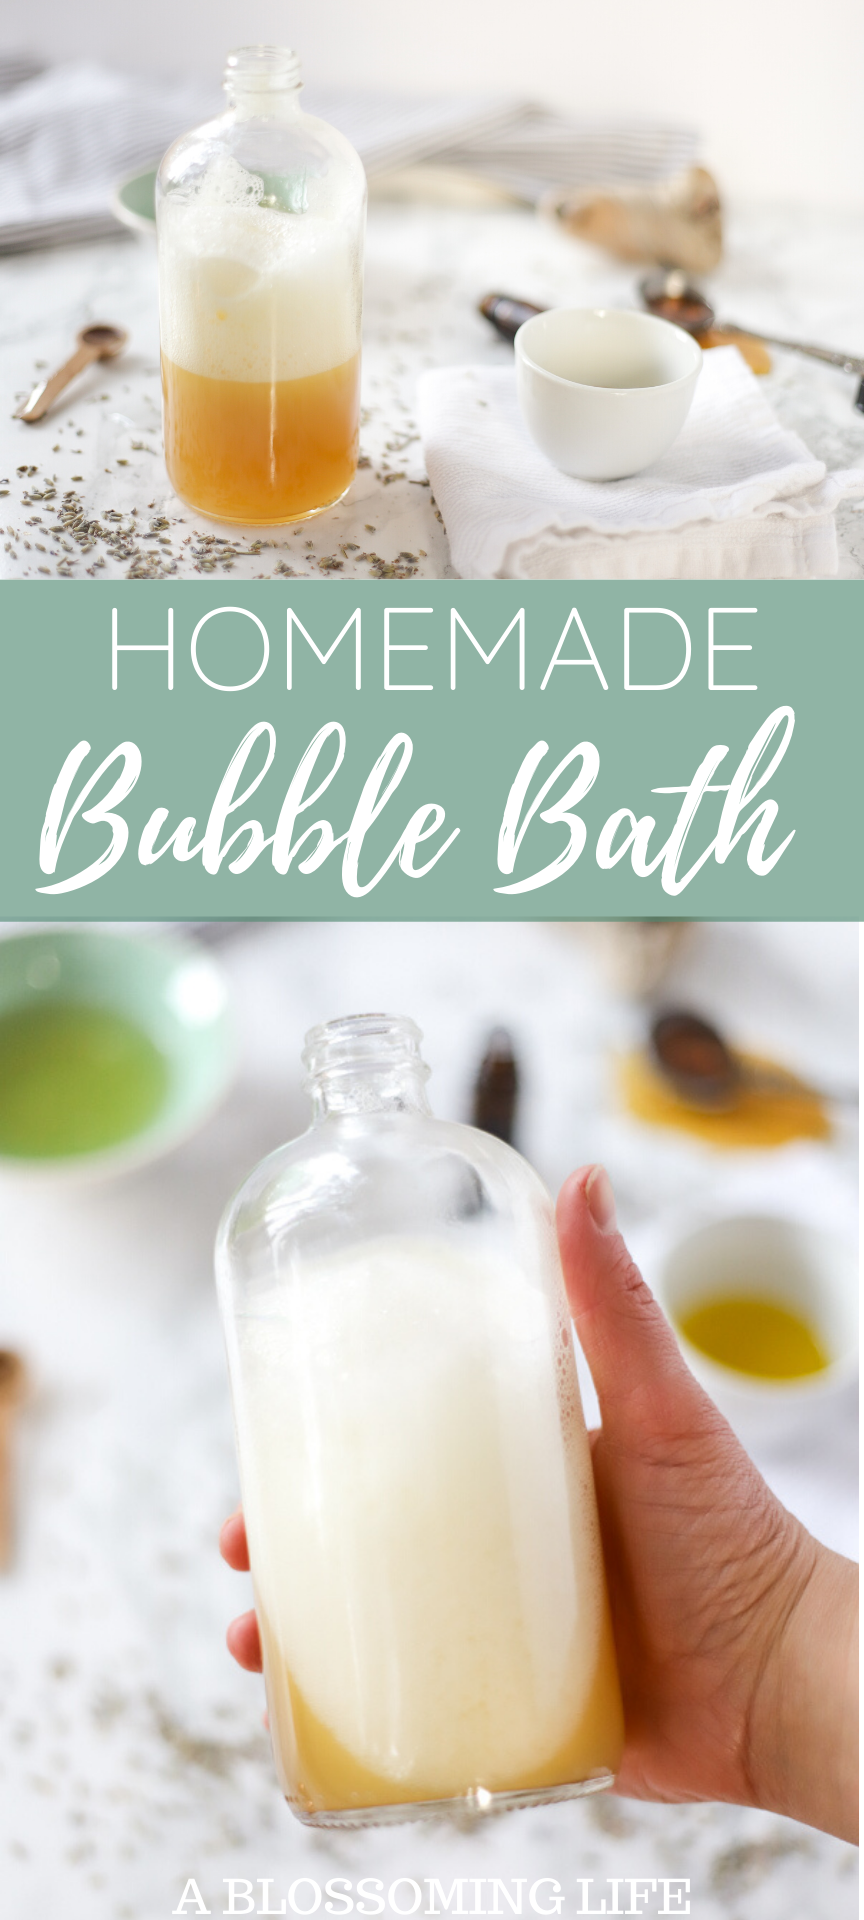 homemade bubble bath in a glass jar with a wooden spoon to the left, lavender petals spread around, and a green bowl of soap to the left